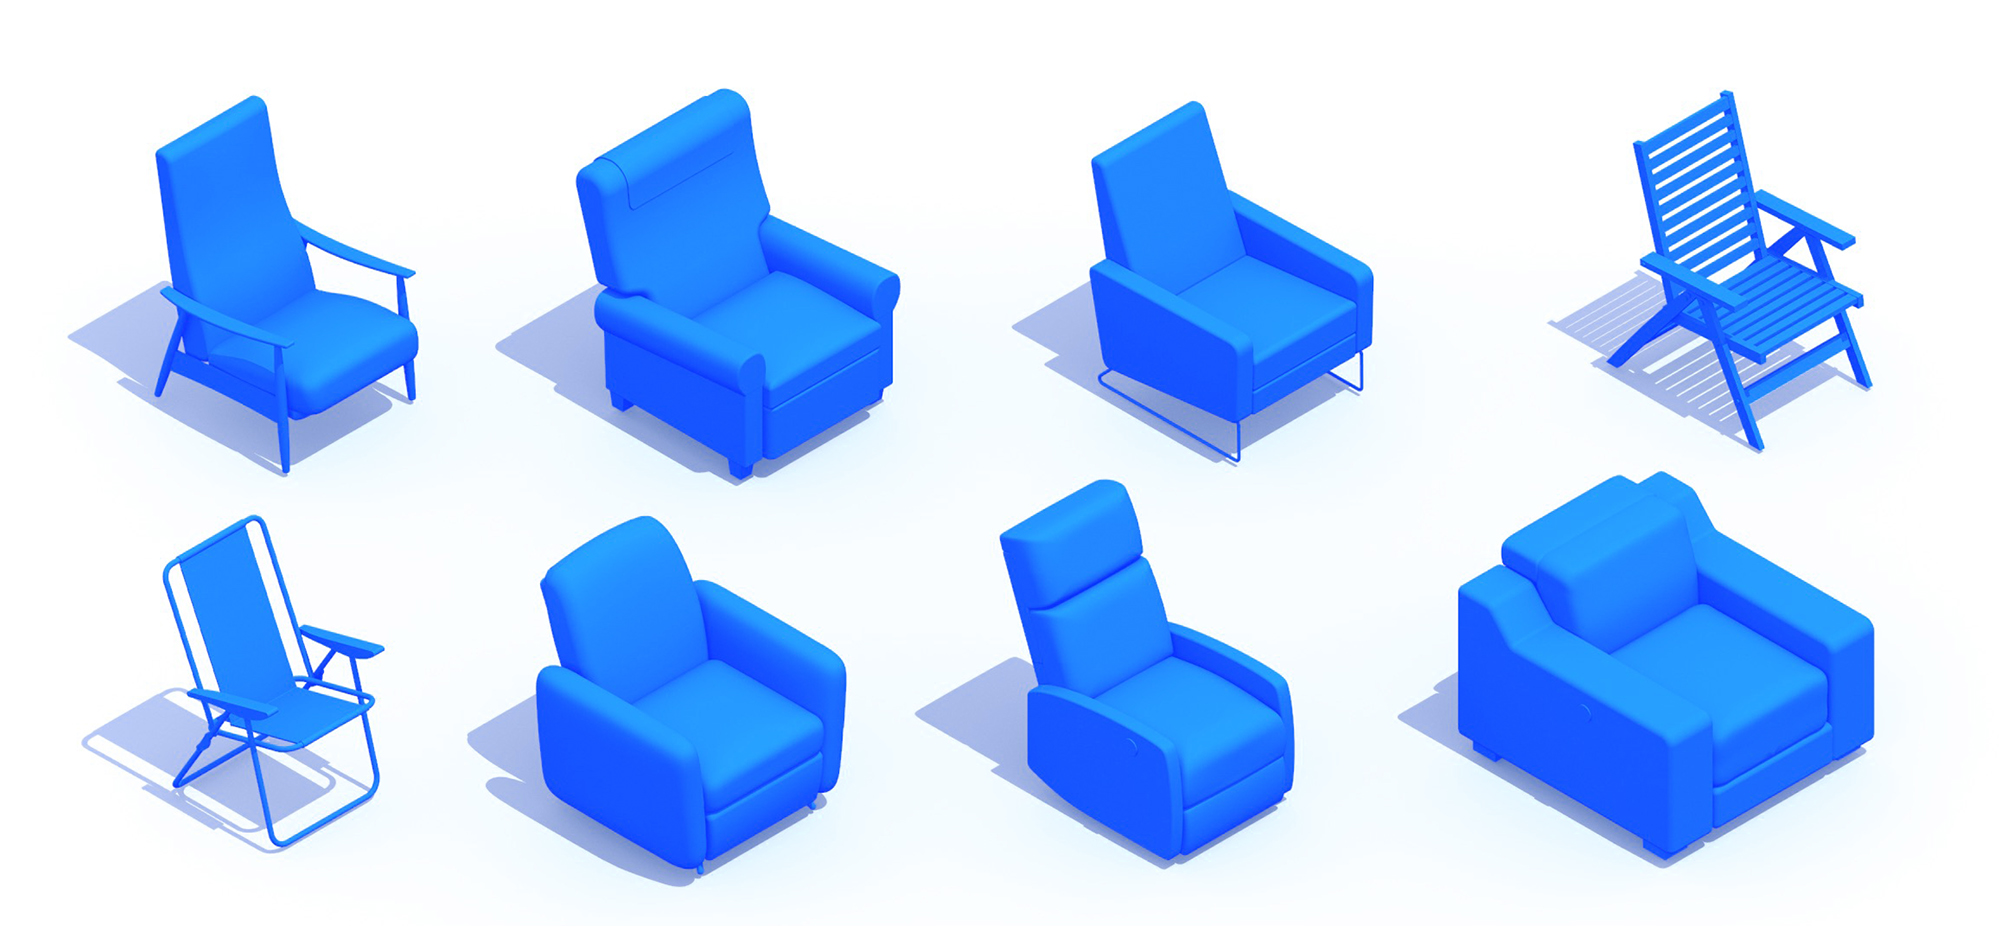 Collection of 3D Recliners showing a diversity of sizes, styles, and types